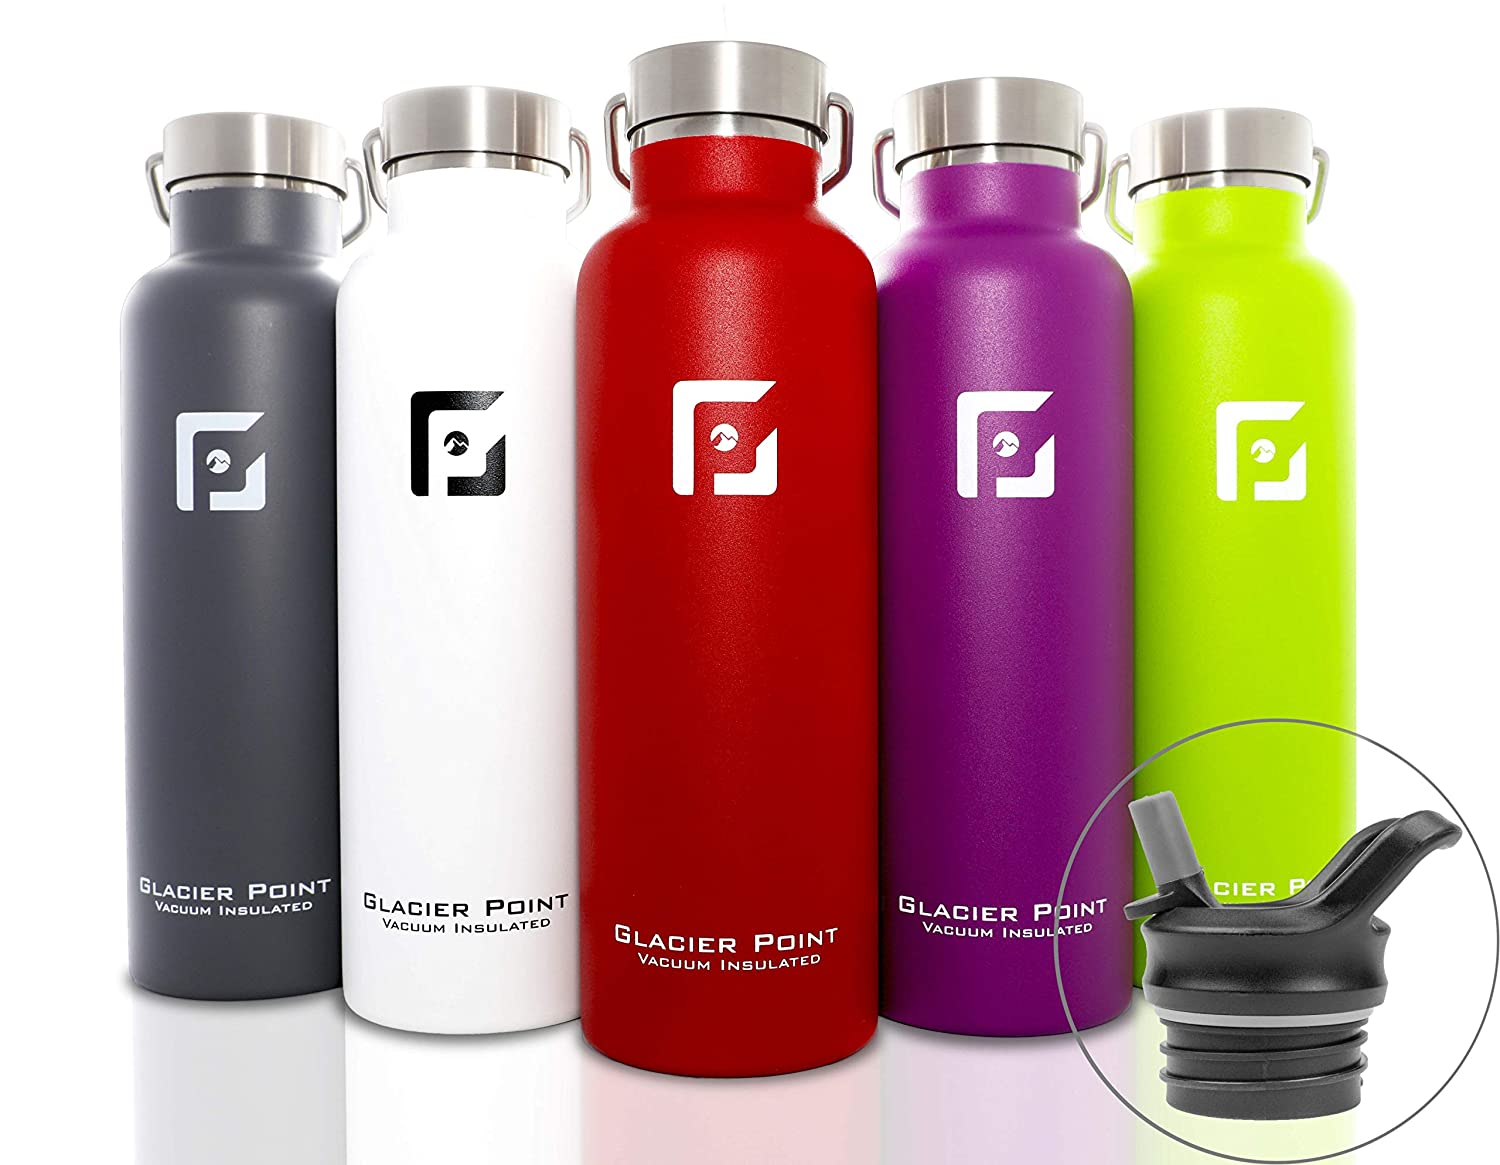 Top 10 Best Stainless Steel Water Bottle Reviews in 2020 3